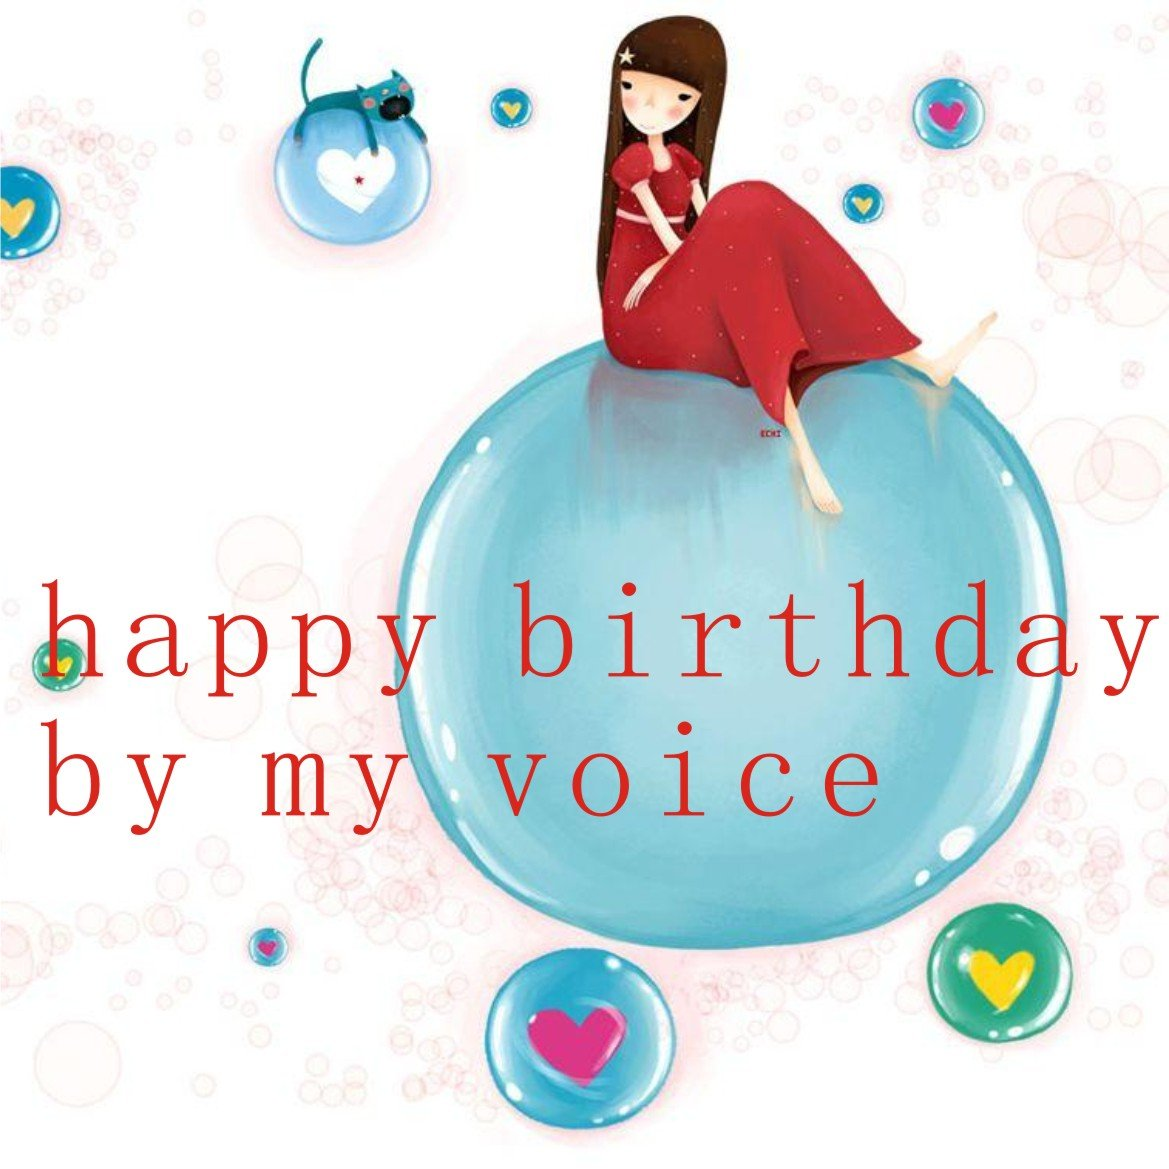 Aliexpress Buy customized birthday greeting card with voice – Voice Birthday Cards